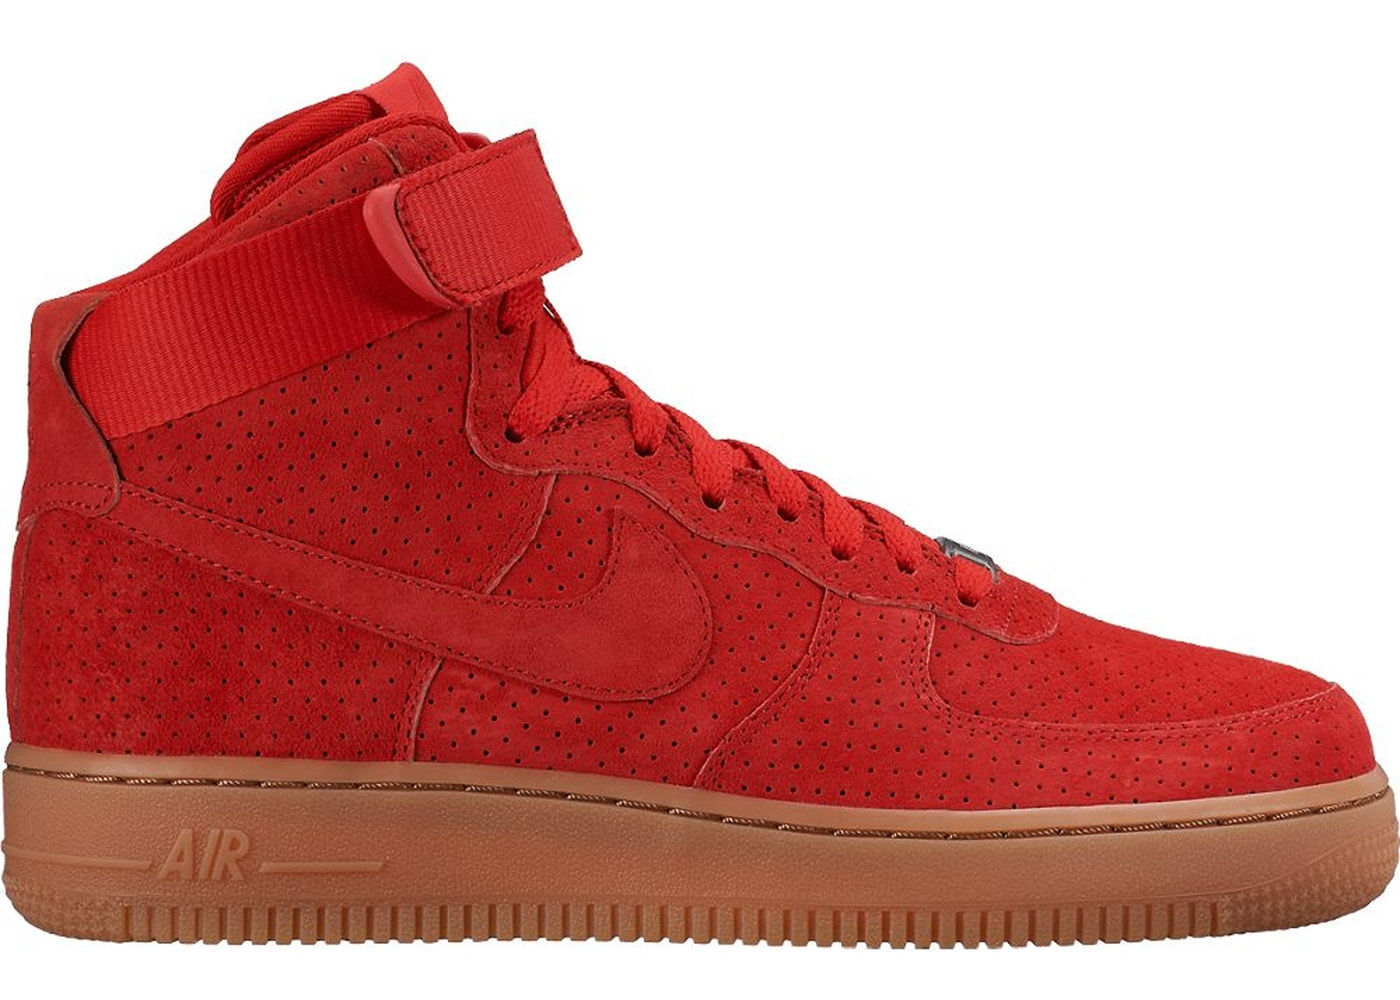 Nike Air Force 1 High Suede University Red Gum (W)